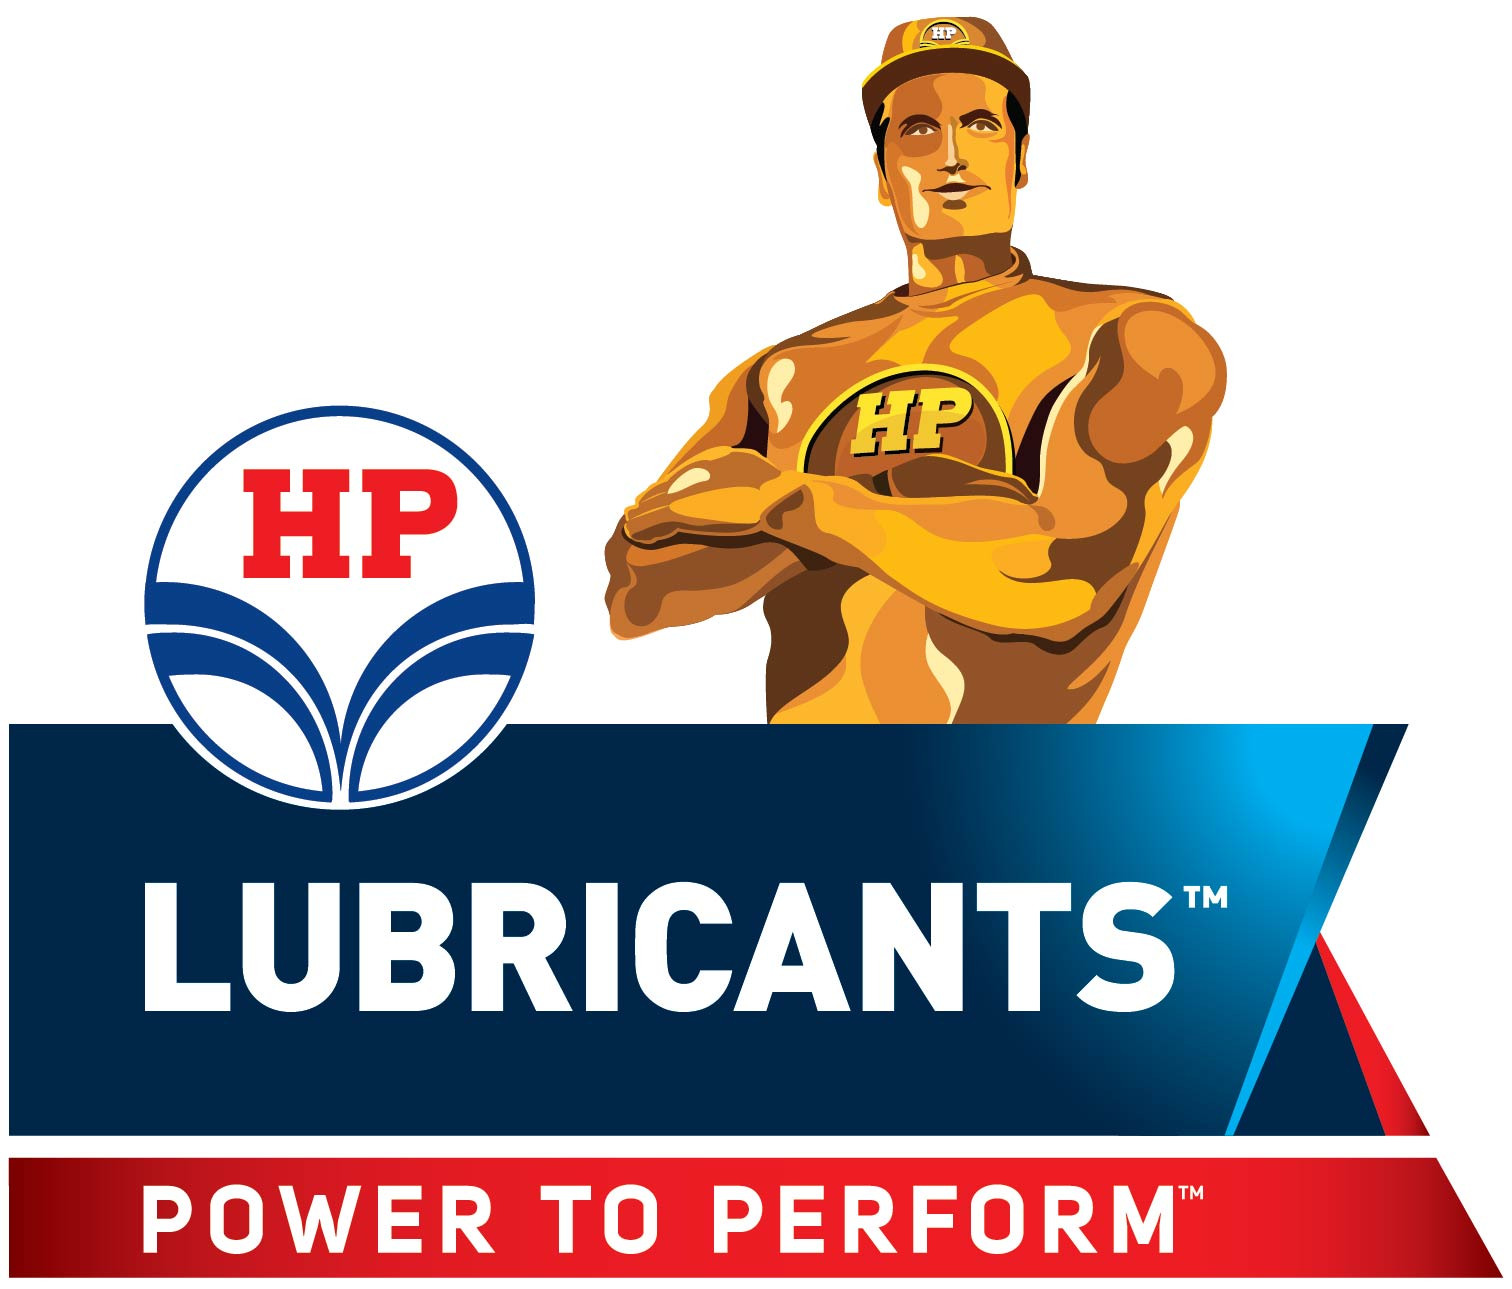 HP Lubricants New logo Final-01 - Commercial Vehicle Forum